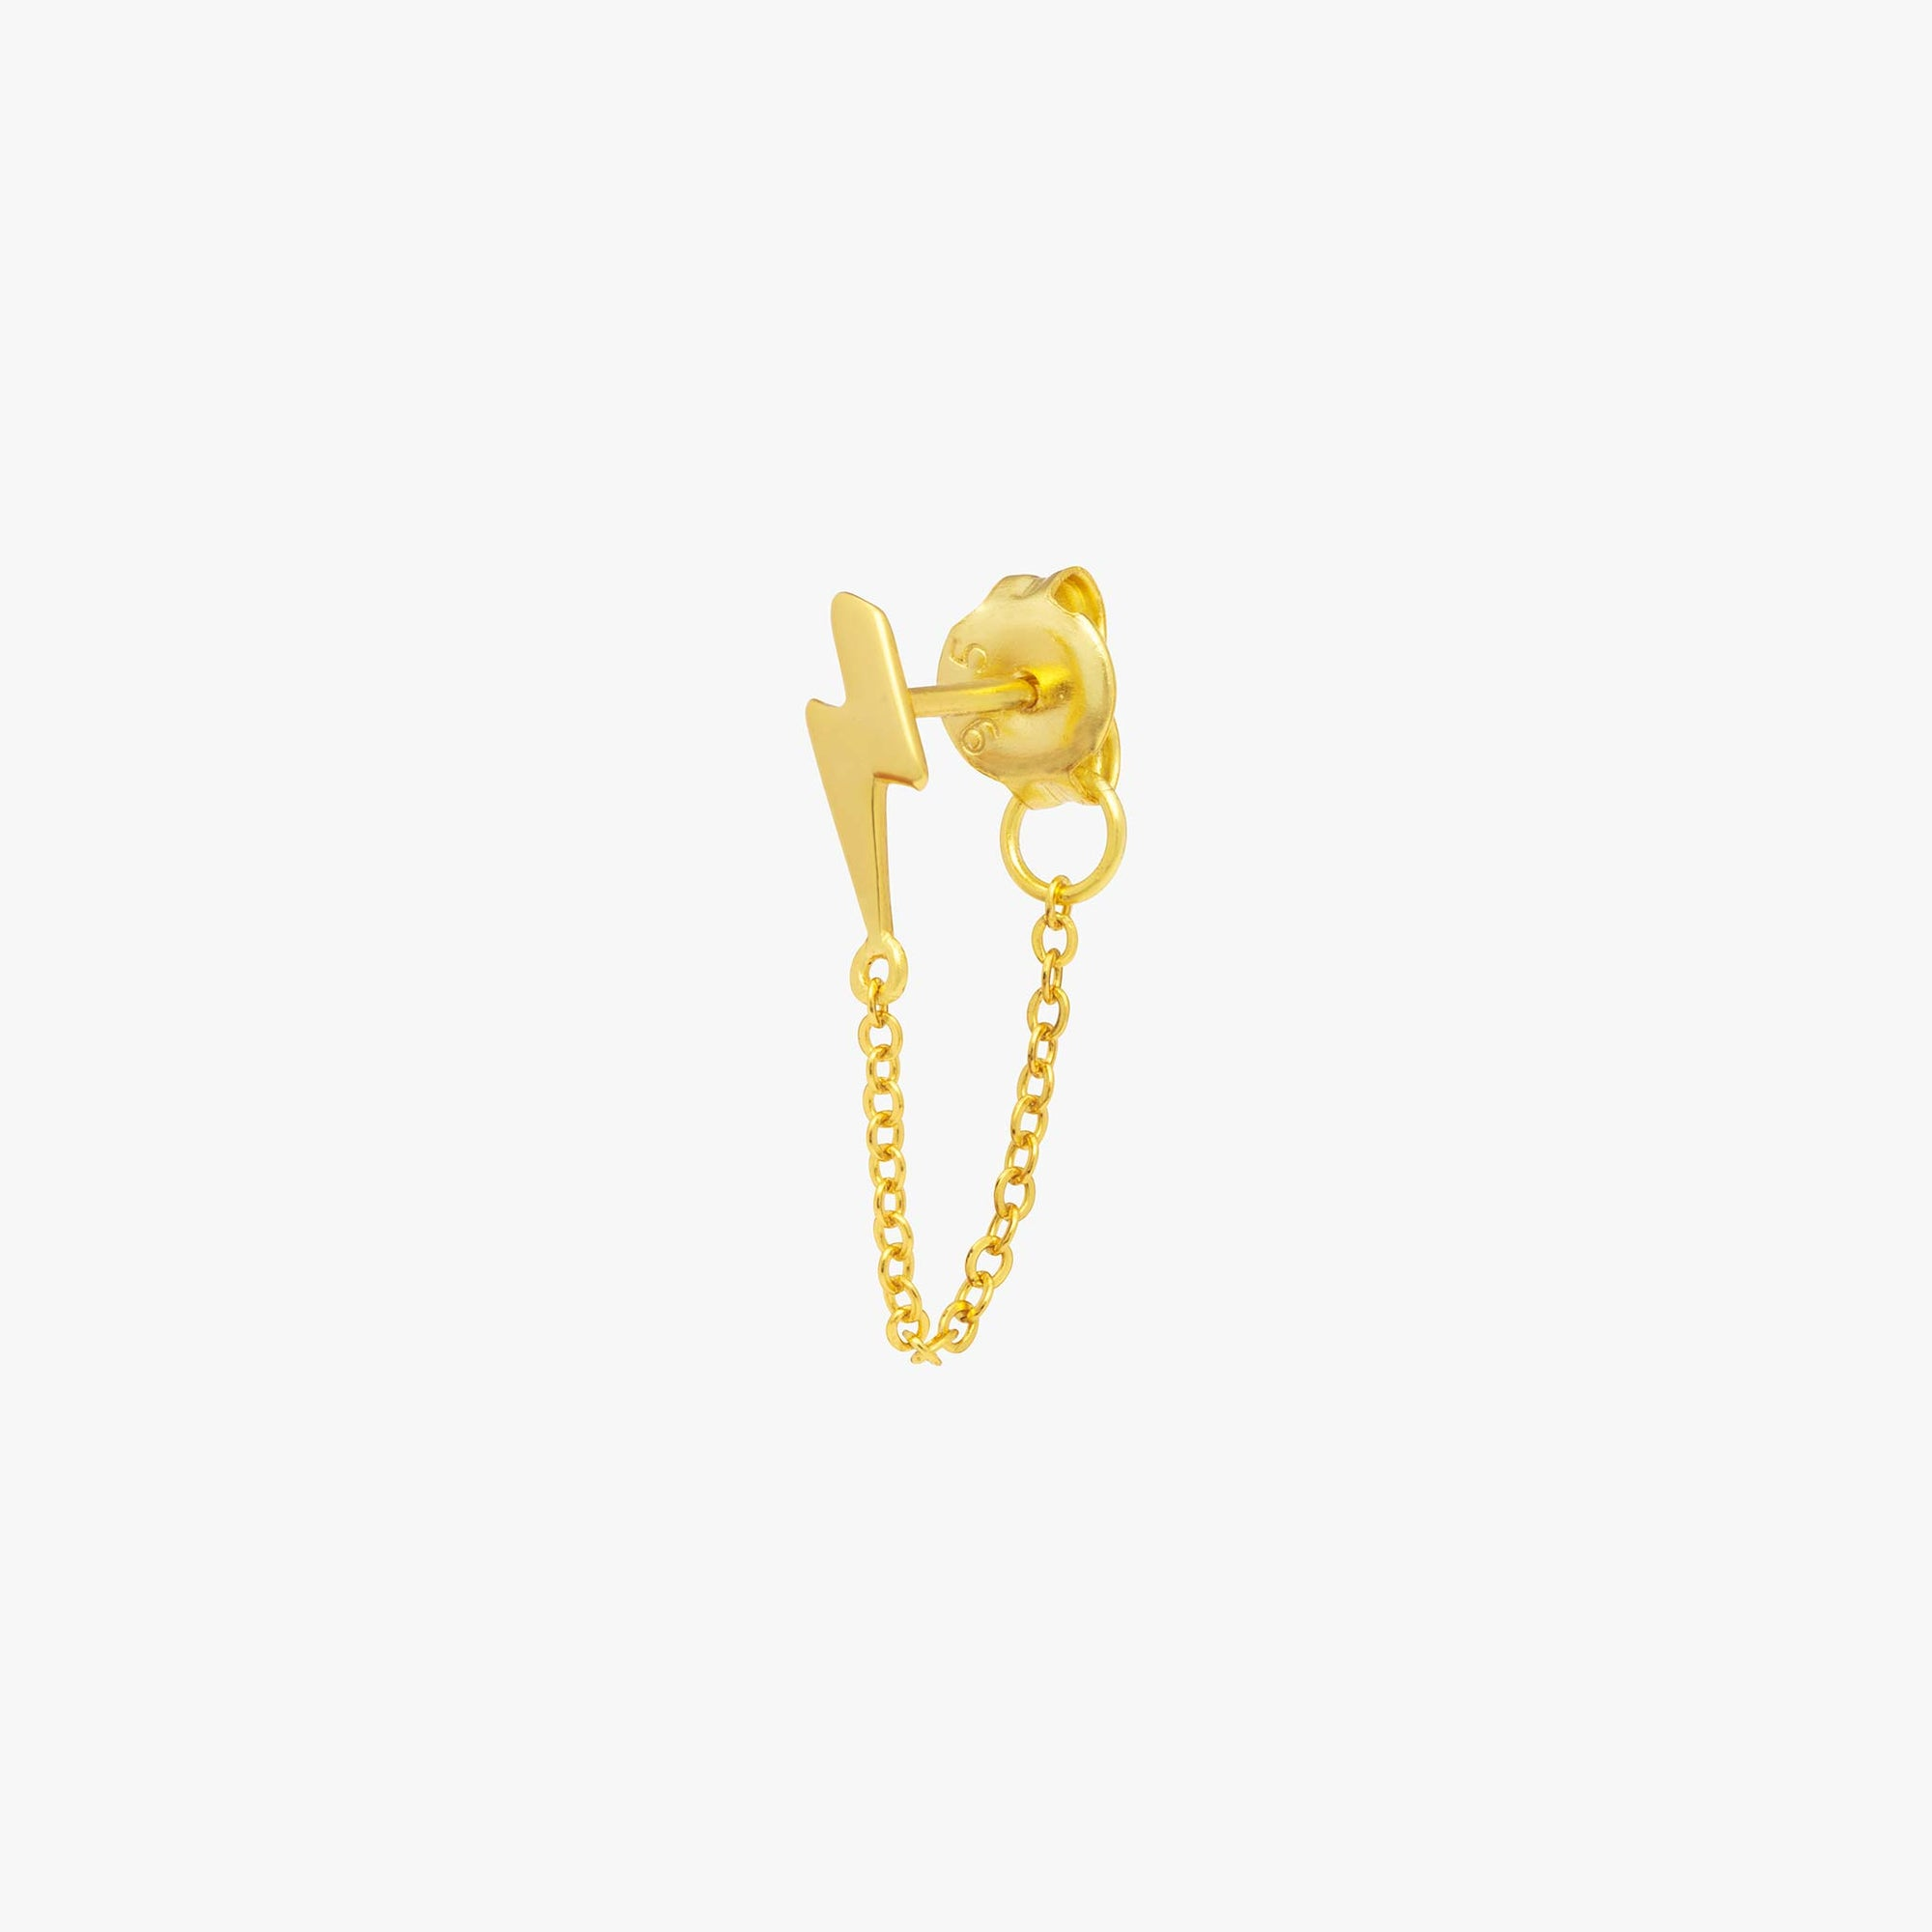 Lightning bolt stud with a chain dangle that connects to the back of the stud. color:gold